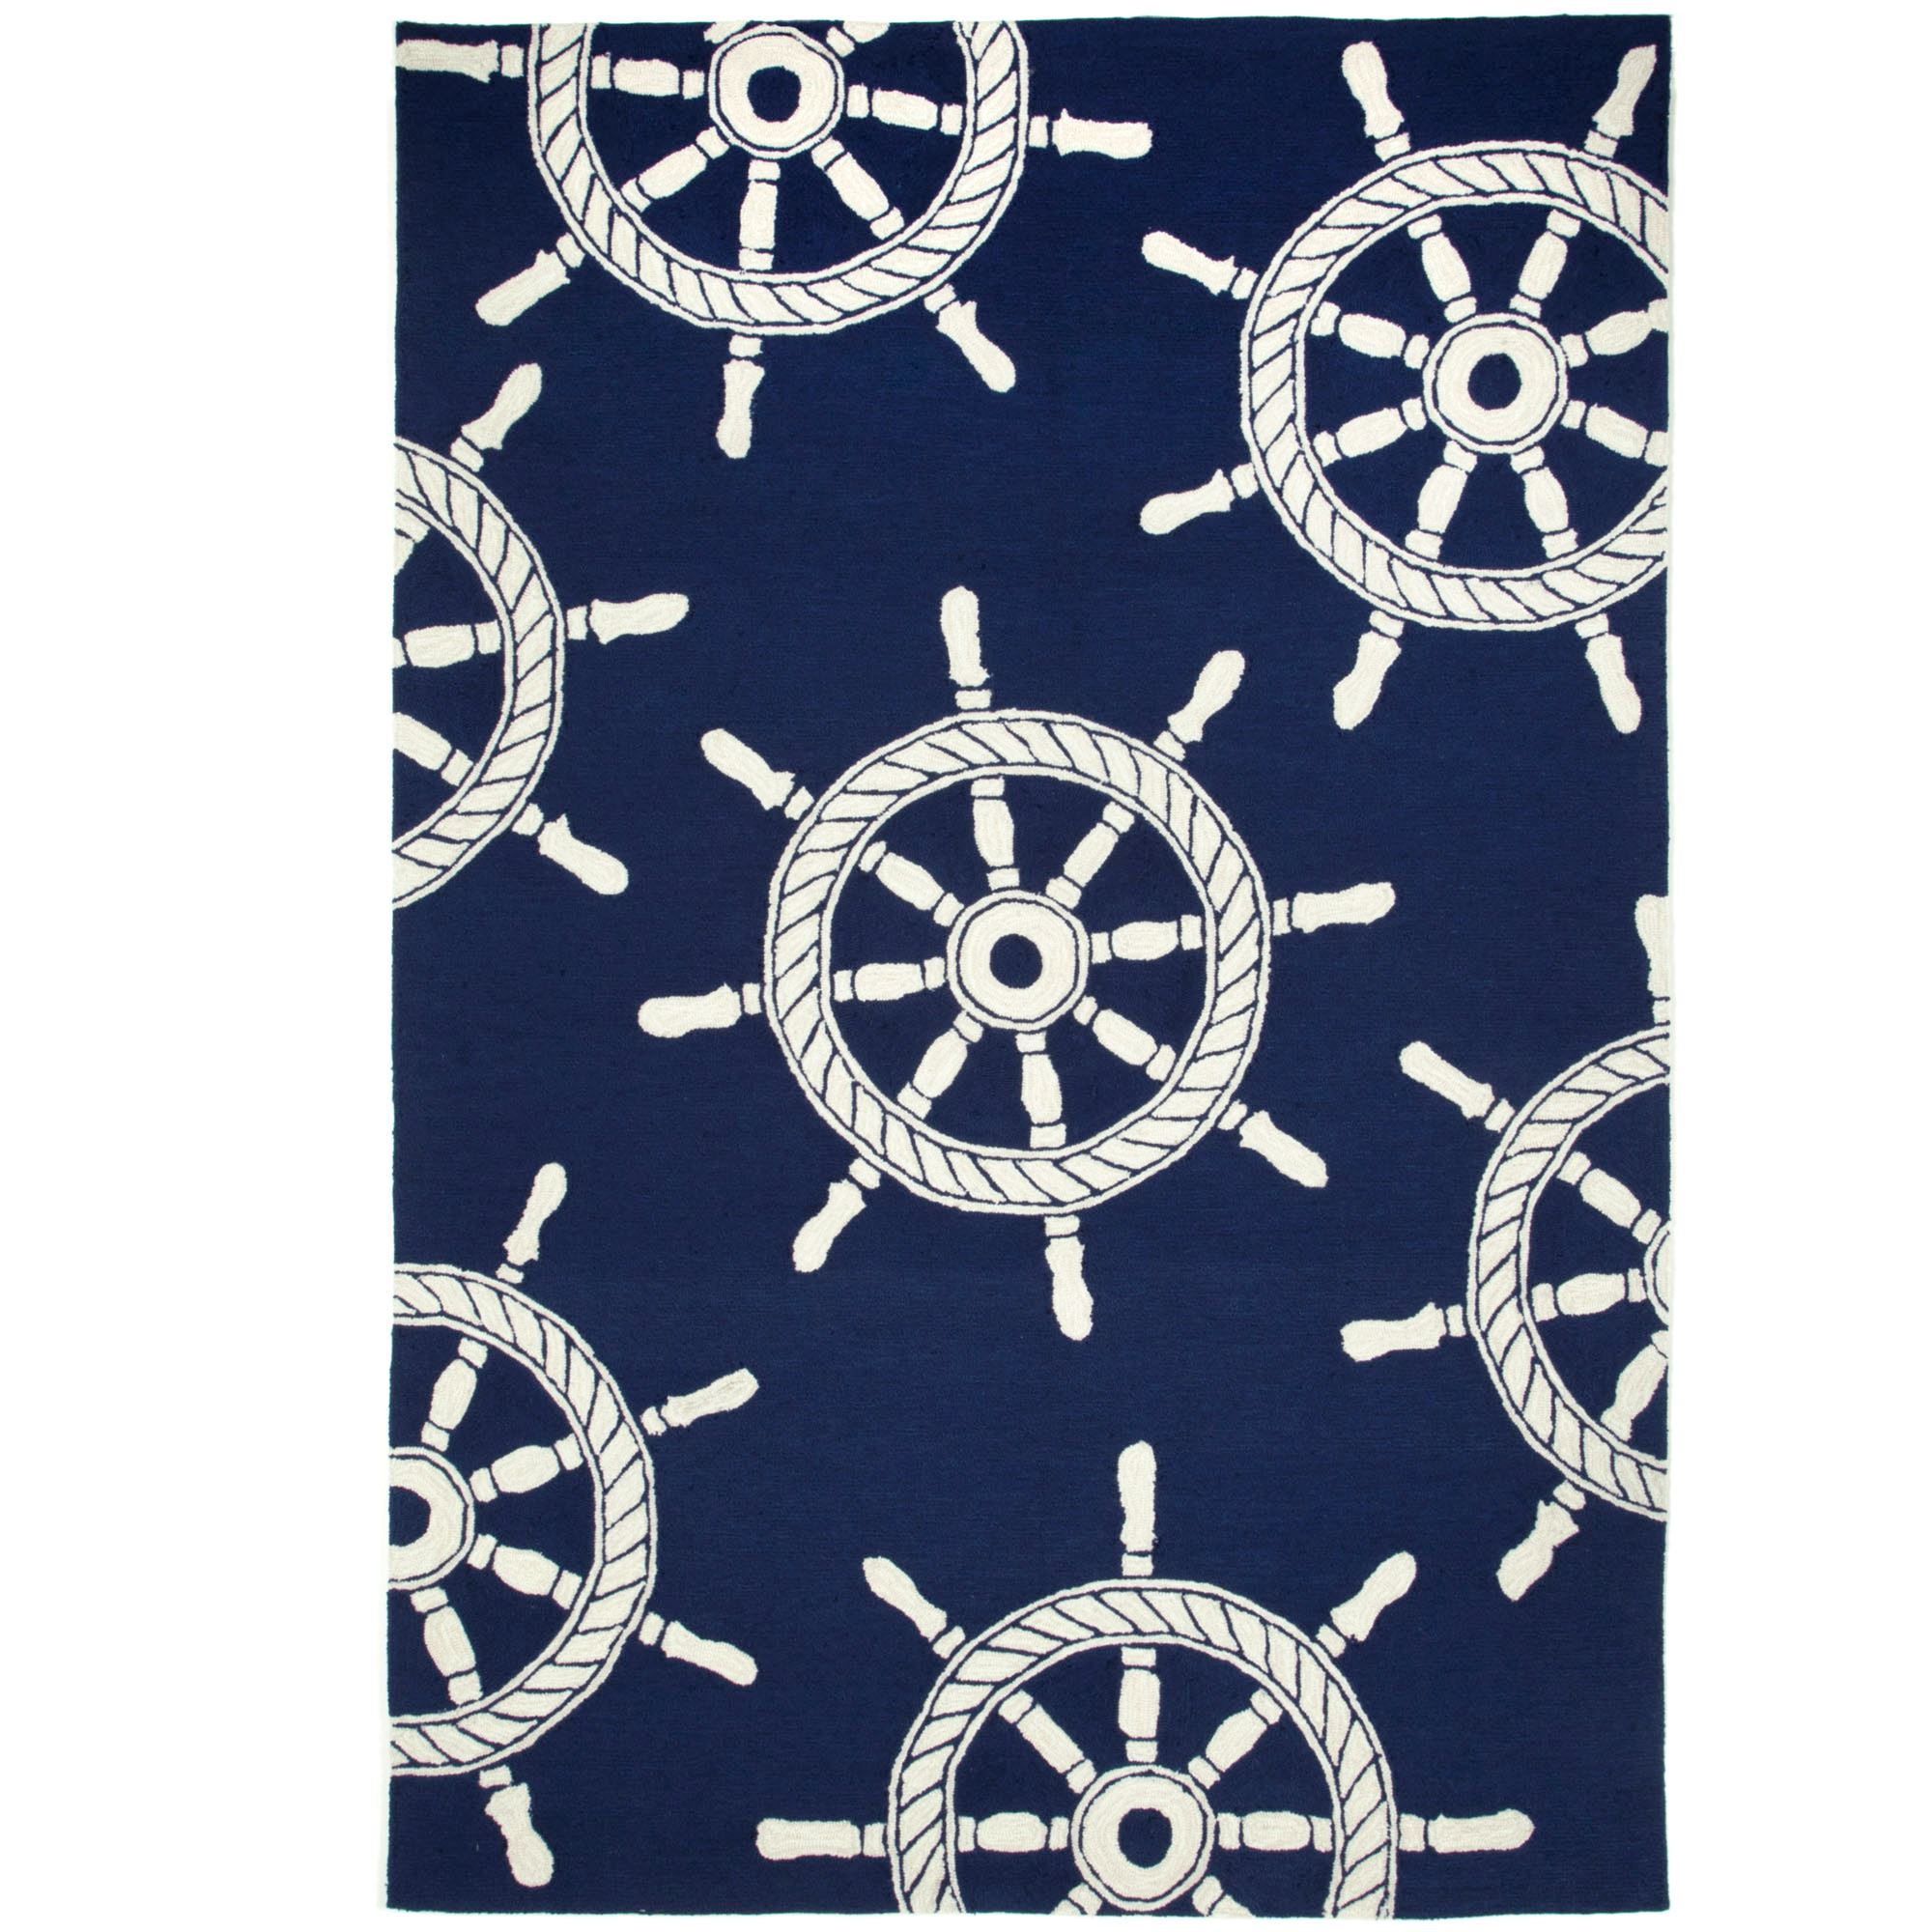 rug amazon large black contemporary premium luxury blue for living diamond cheap room modern by dp clearance area com beige brown rugs navy